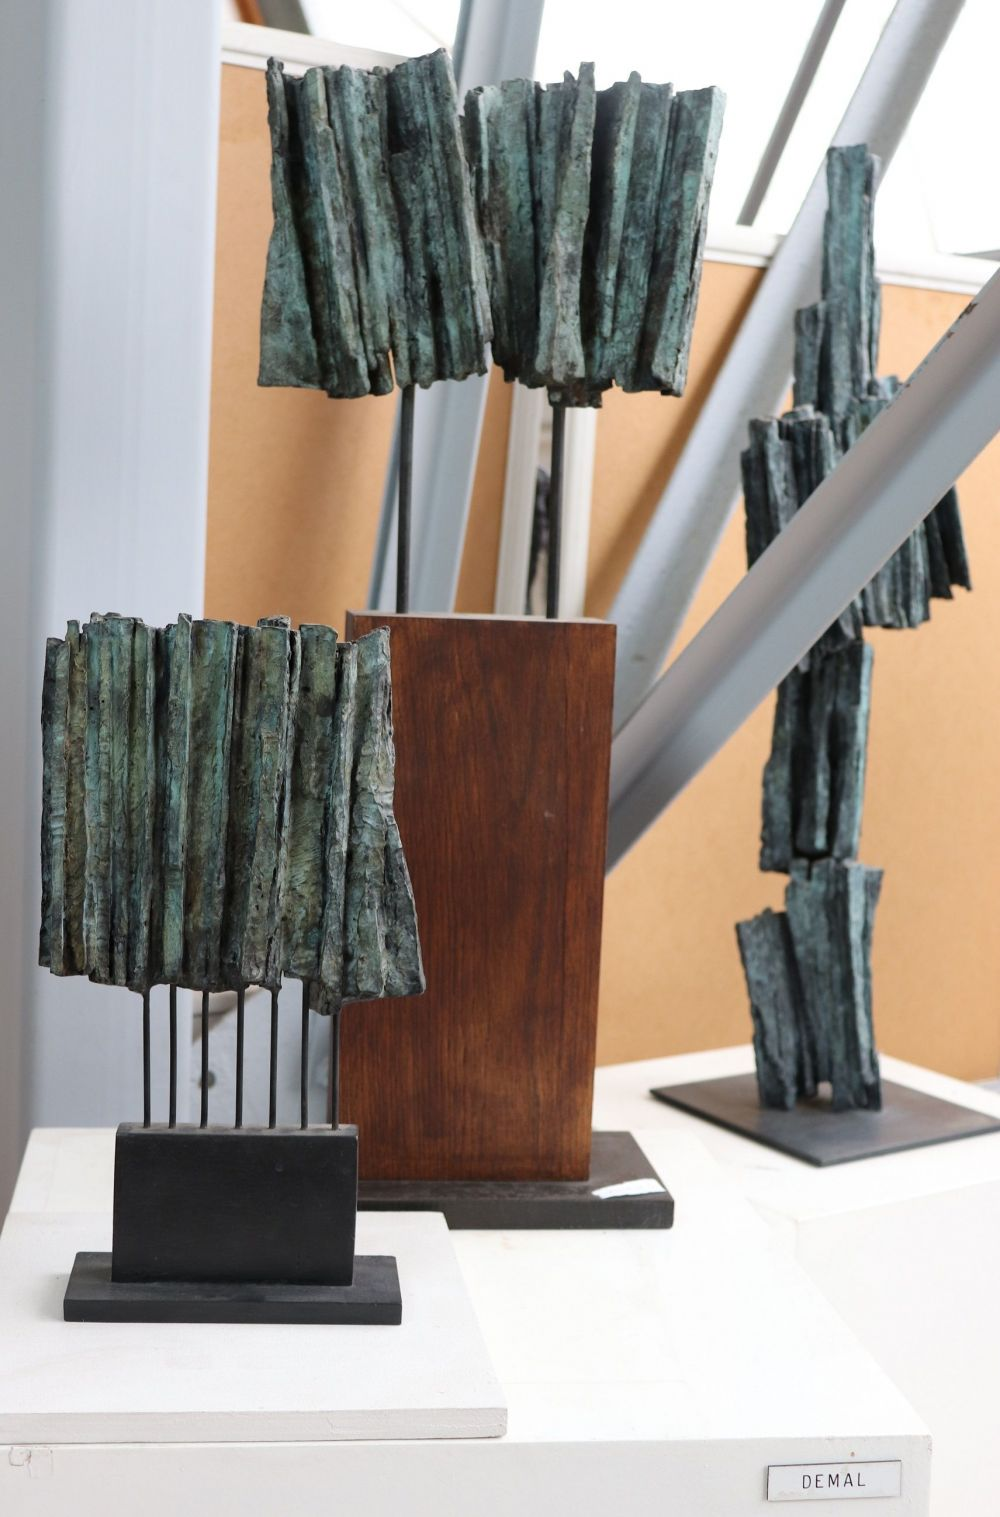 Sculpture - Martine Demal - Small Vibration, Signs & Writings series - detail 2